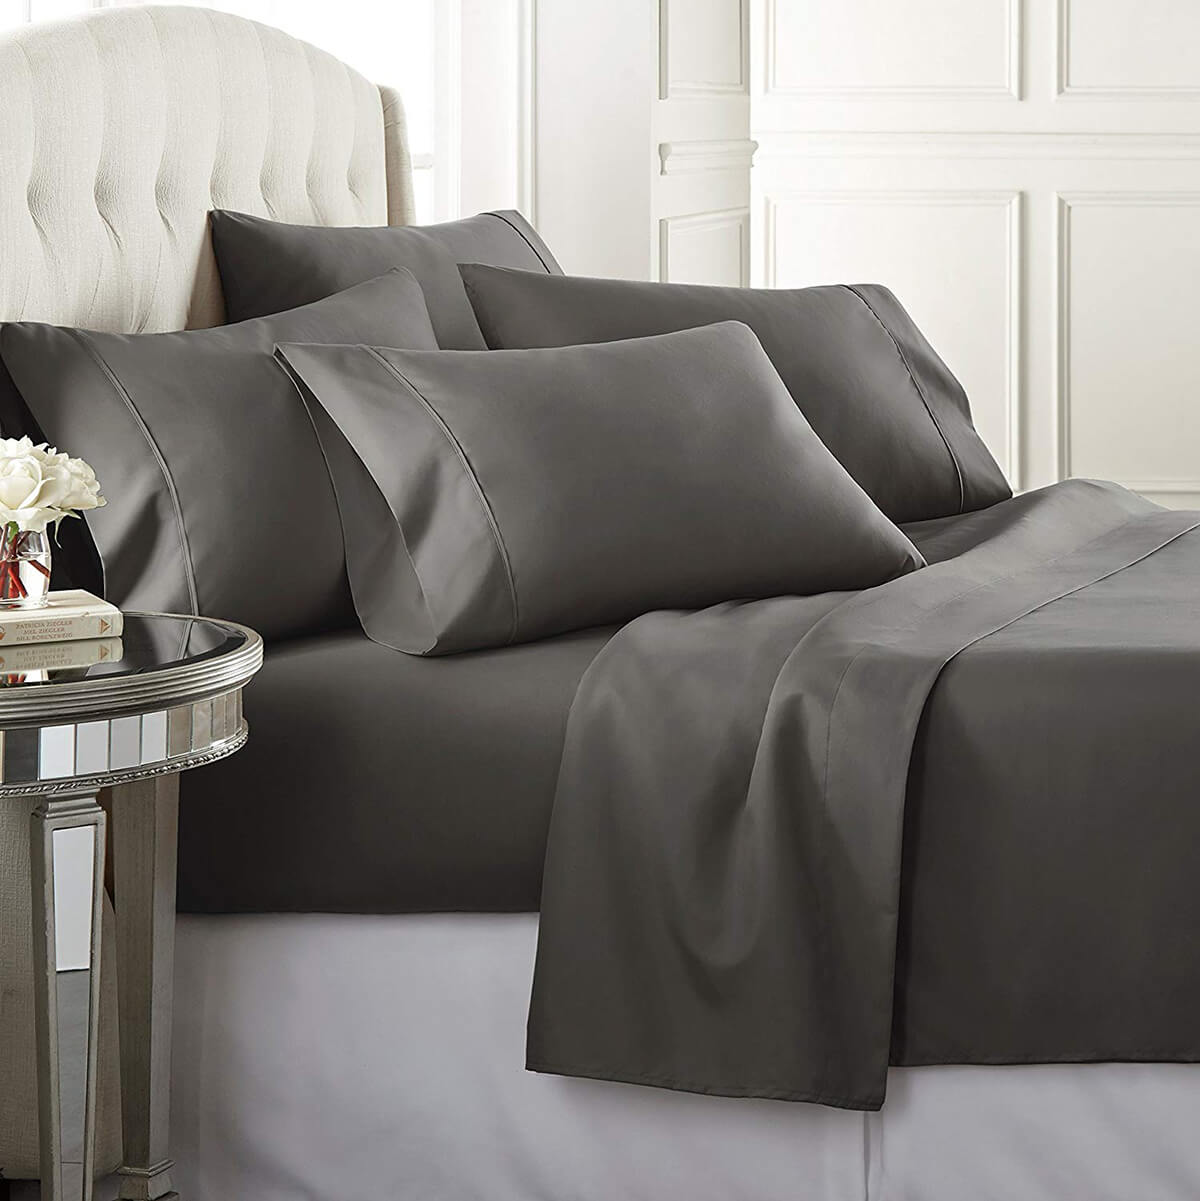 Hotel Luxury Soft 6 Piece Premium Bed Sheets Set